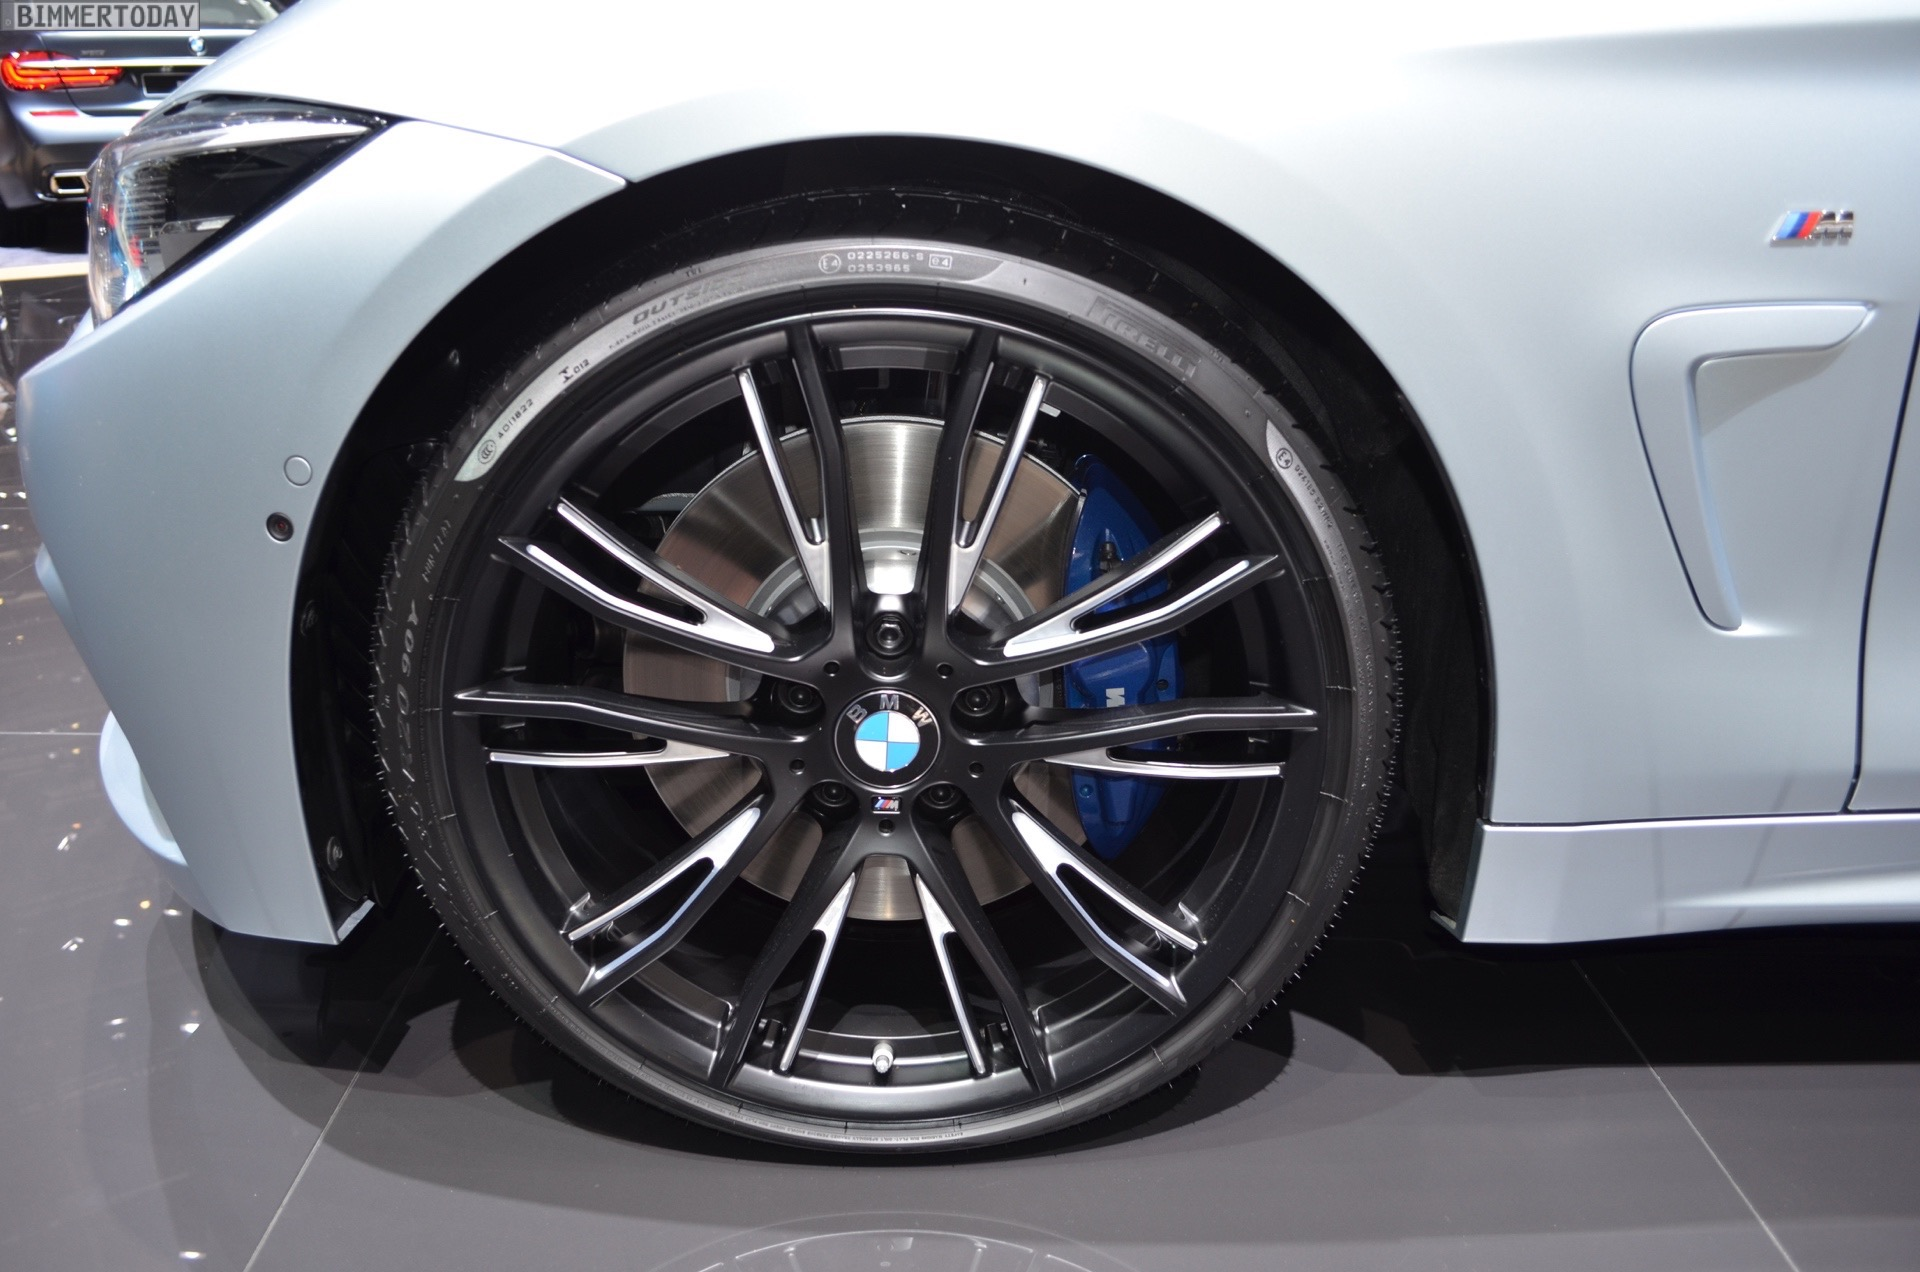 nsw new fs wheels for sport of sale cars bmw rims stunning aratorn